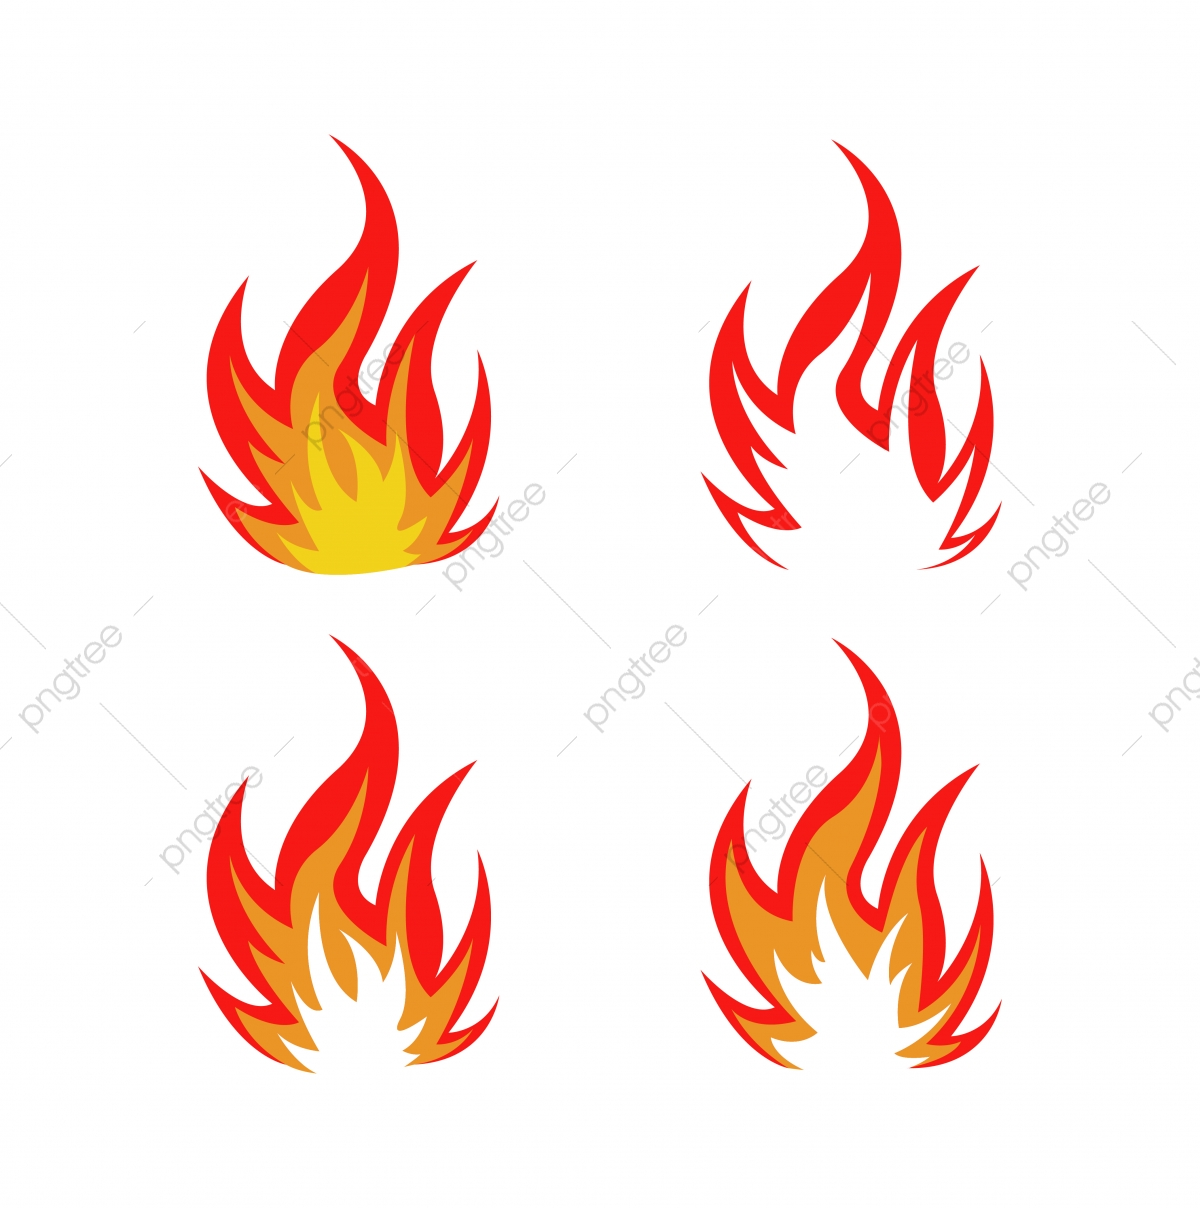 Fire Logo Icon Design Template Vector, Symbol, Fire, Sign PNG and